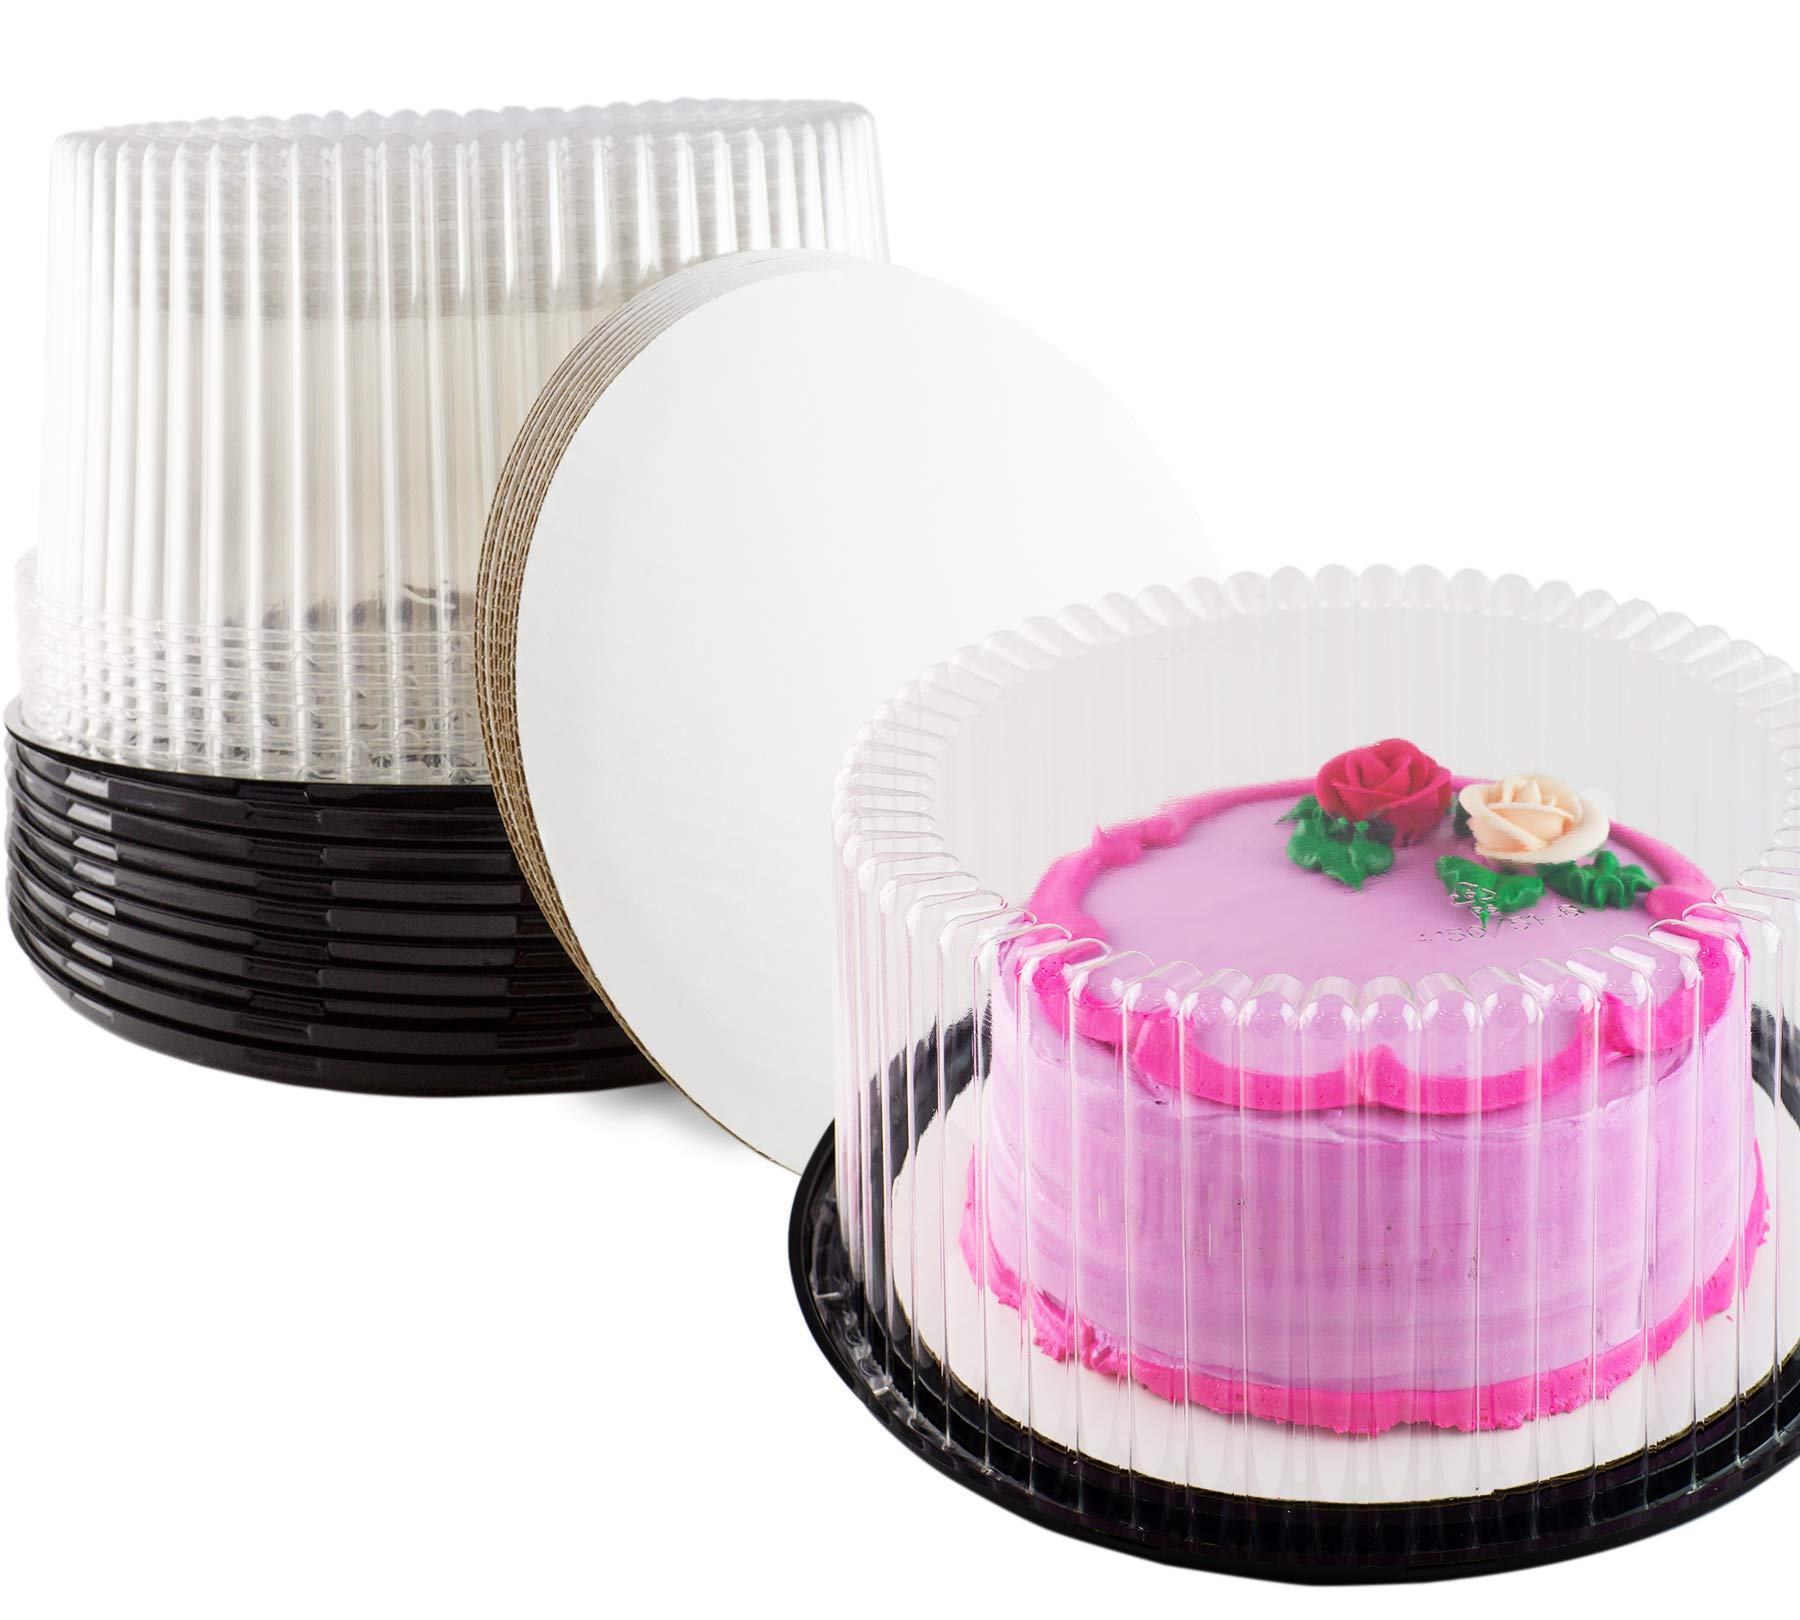 Plastic Cake Container & Board Set By Chefible: Extra-Strong Transparent Round 10'' Bakery Display/Storage Boxes With Base, Tall Dome Lid & Honeycomb Design + Sturdy 10'' Corrugated White Circles